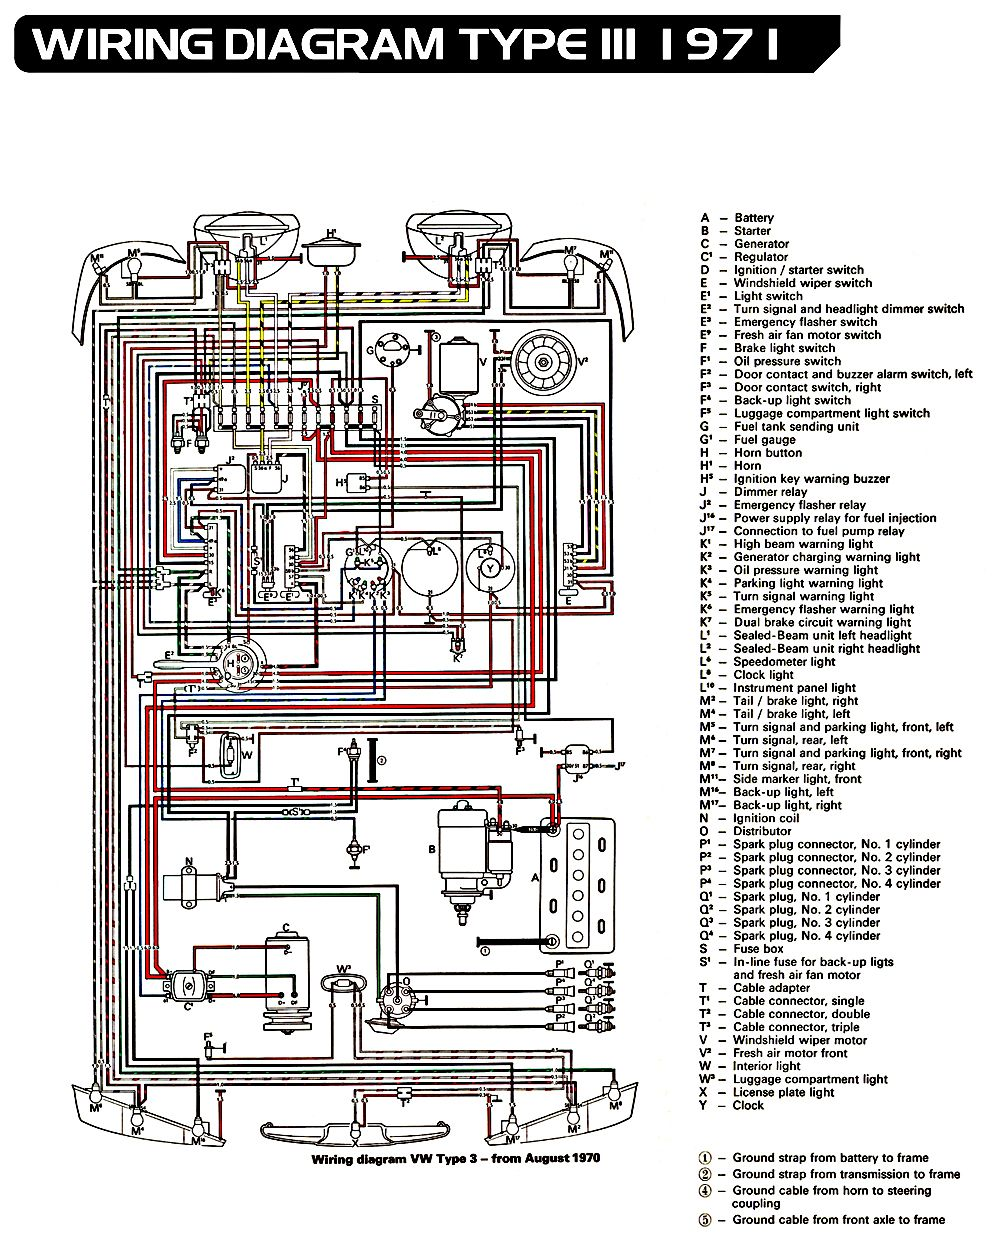 1971 vw bus engine diagram 1971 vw bus wiring diagram